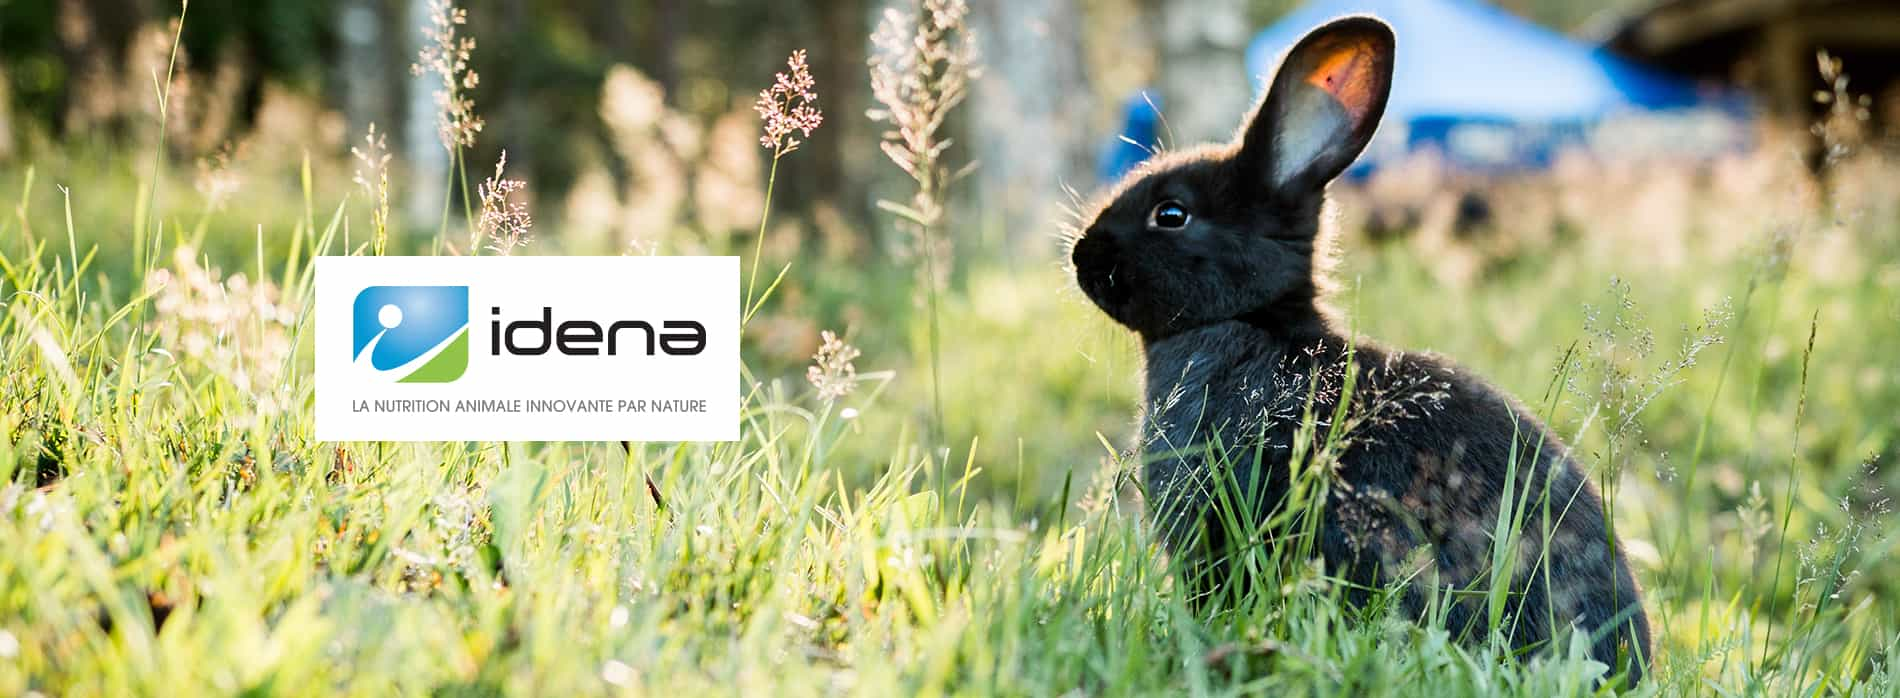 Idena Nutrition animale